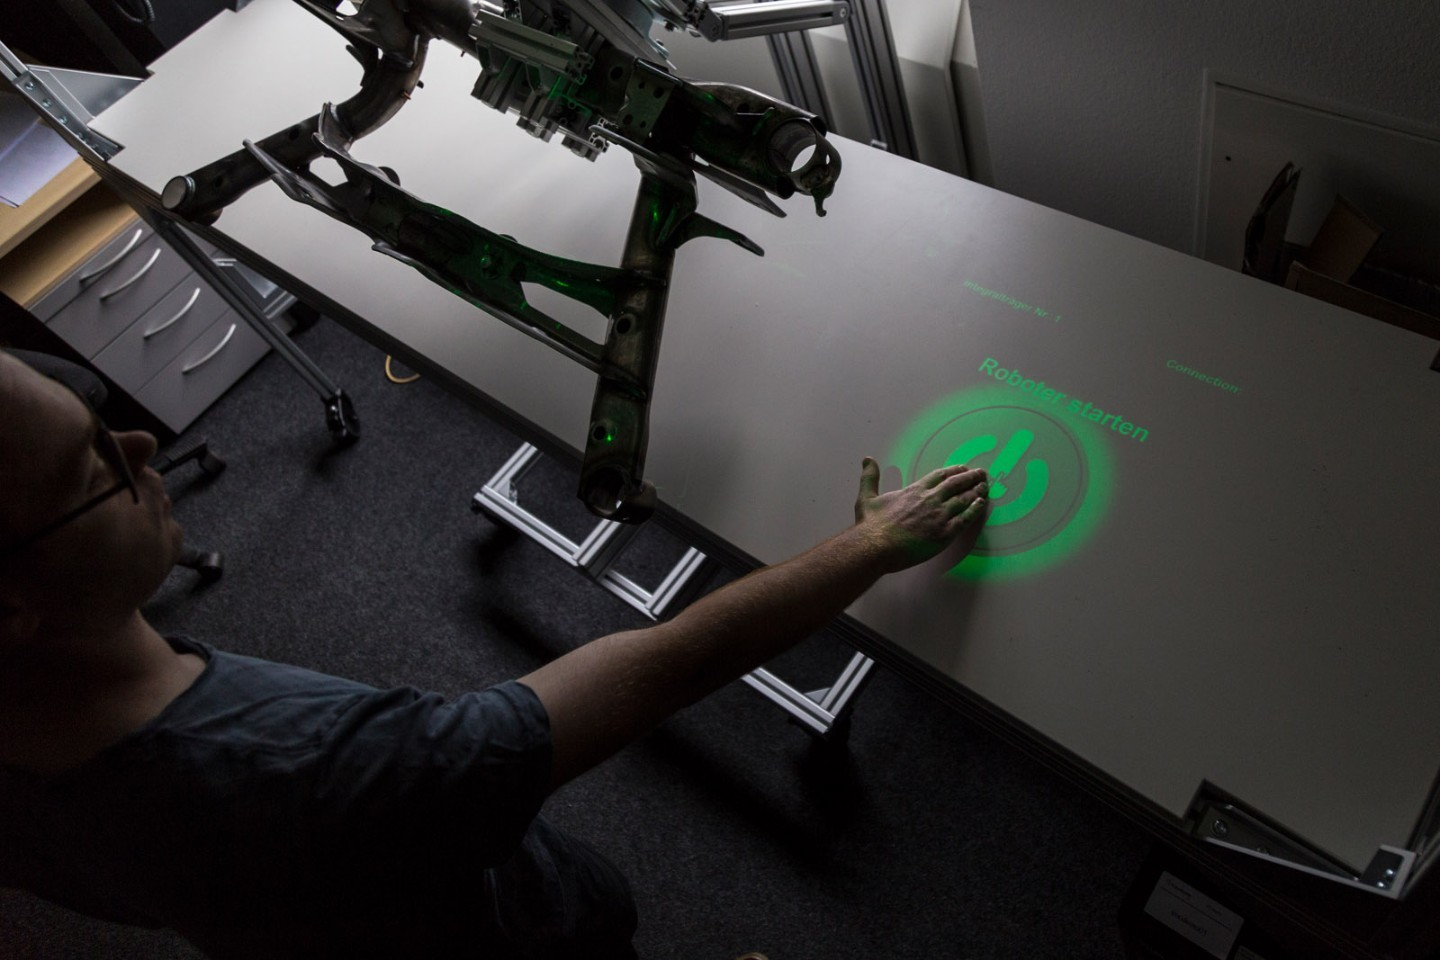 The system's gesture-recognition interface